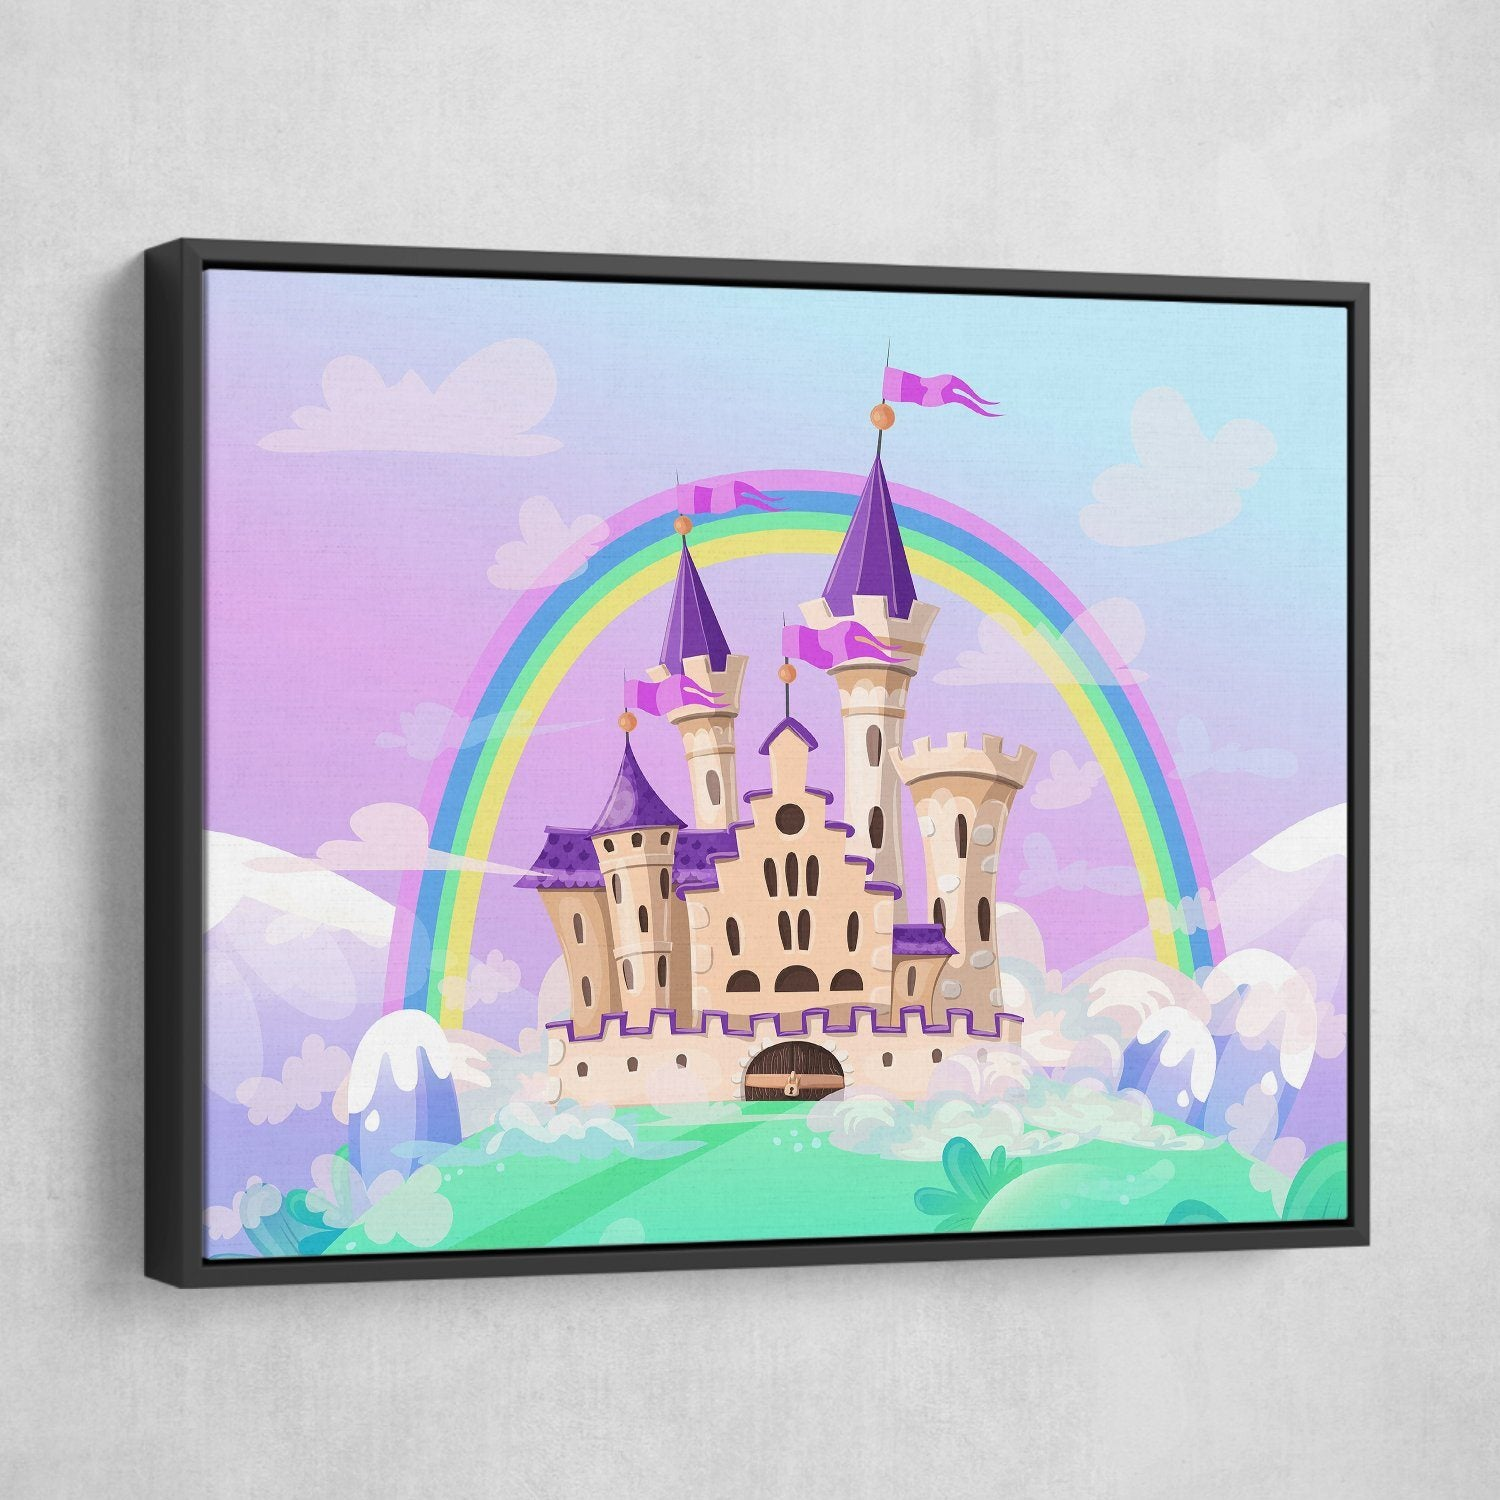 FairyTale Palace wall art black frame